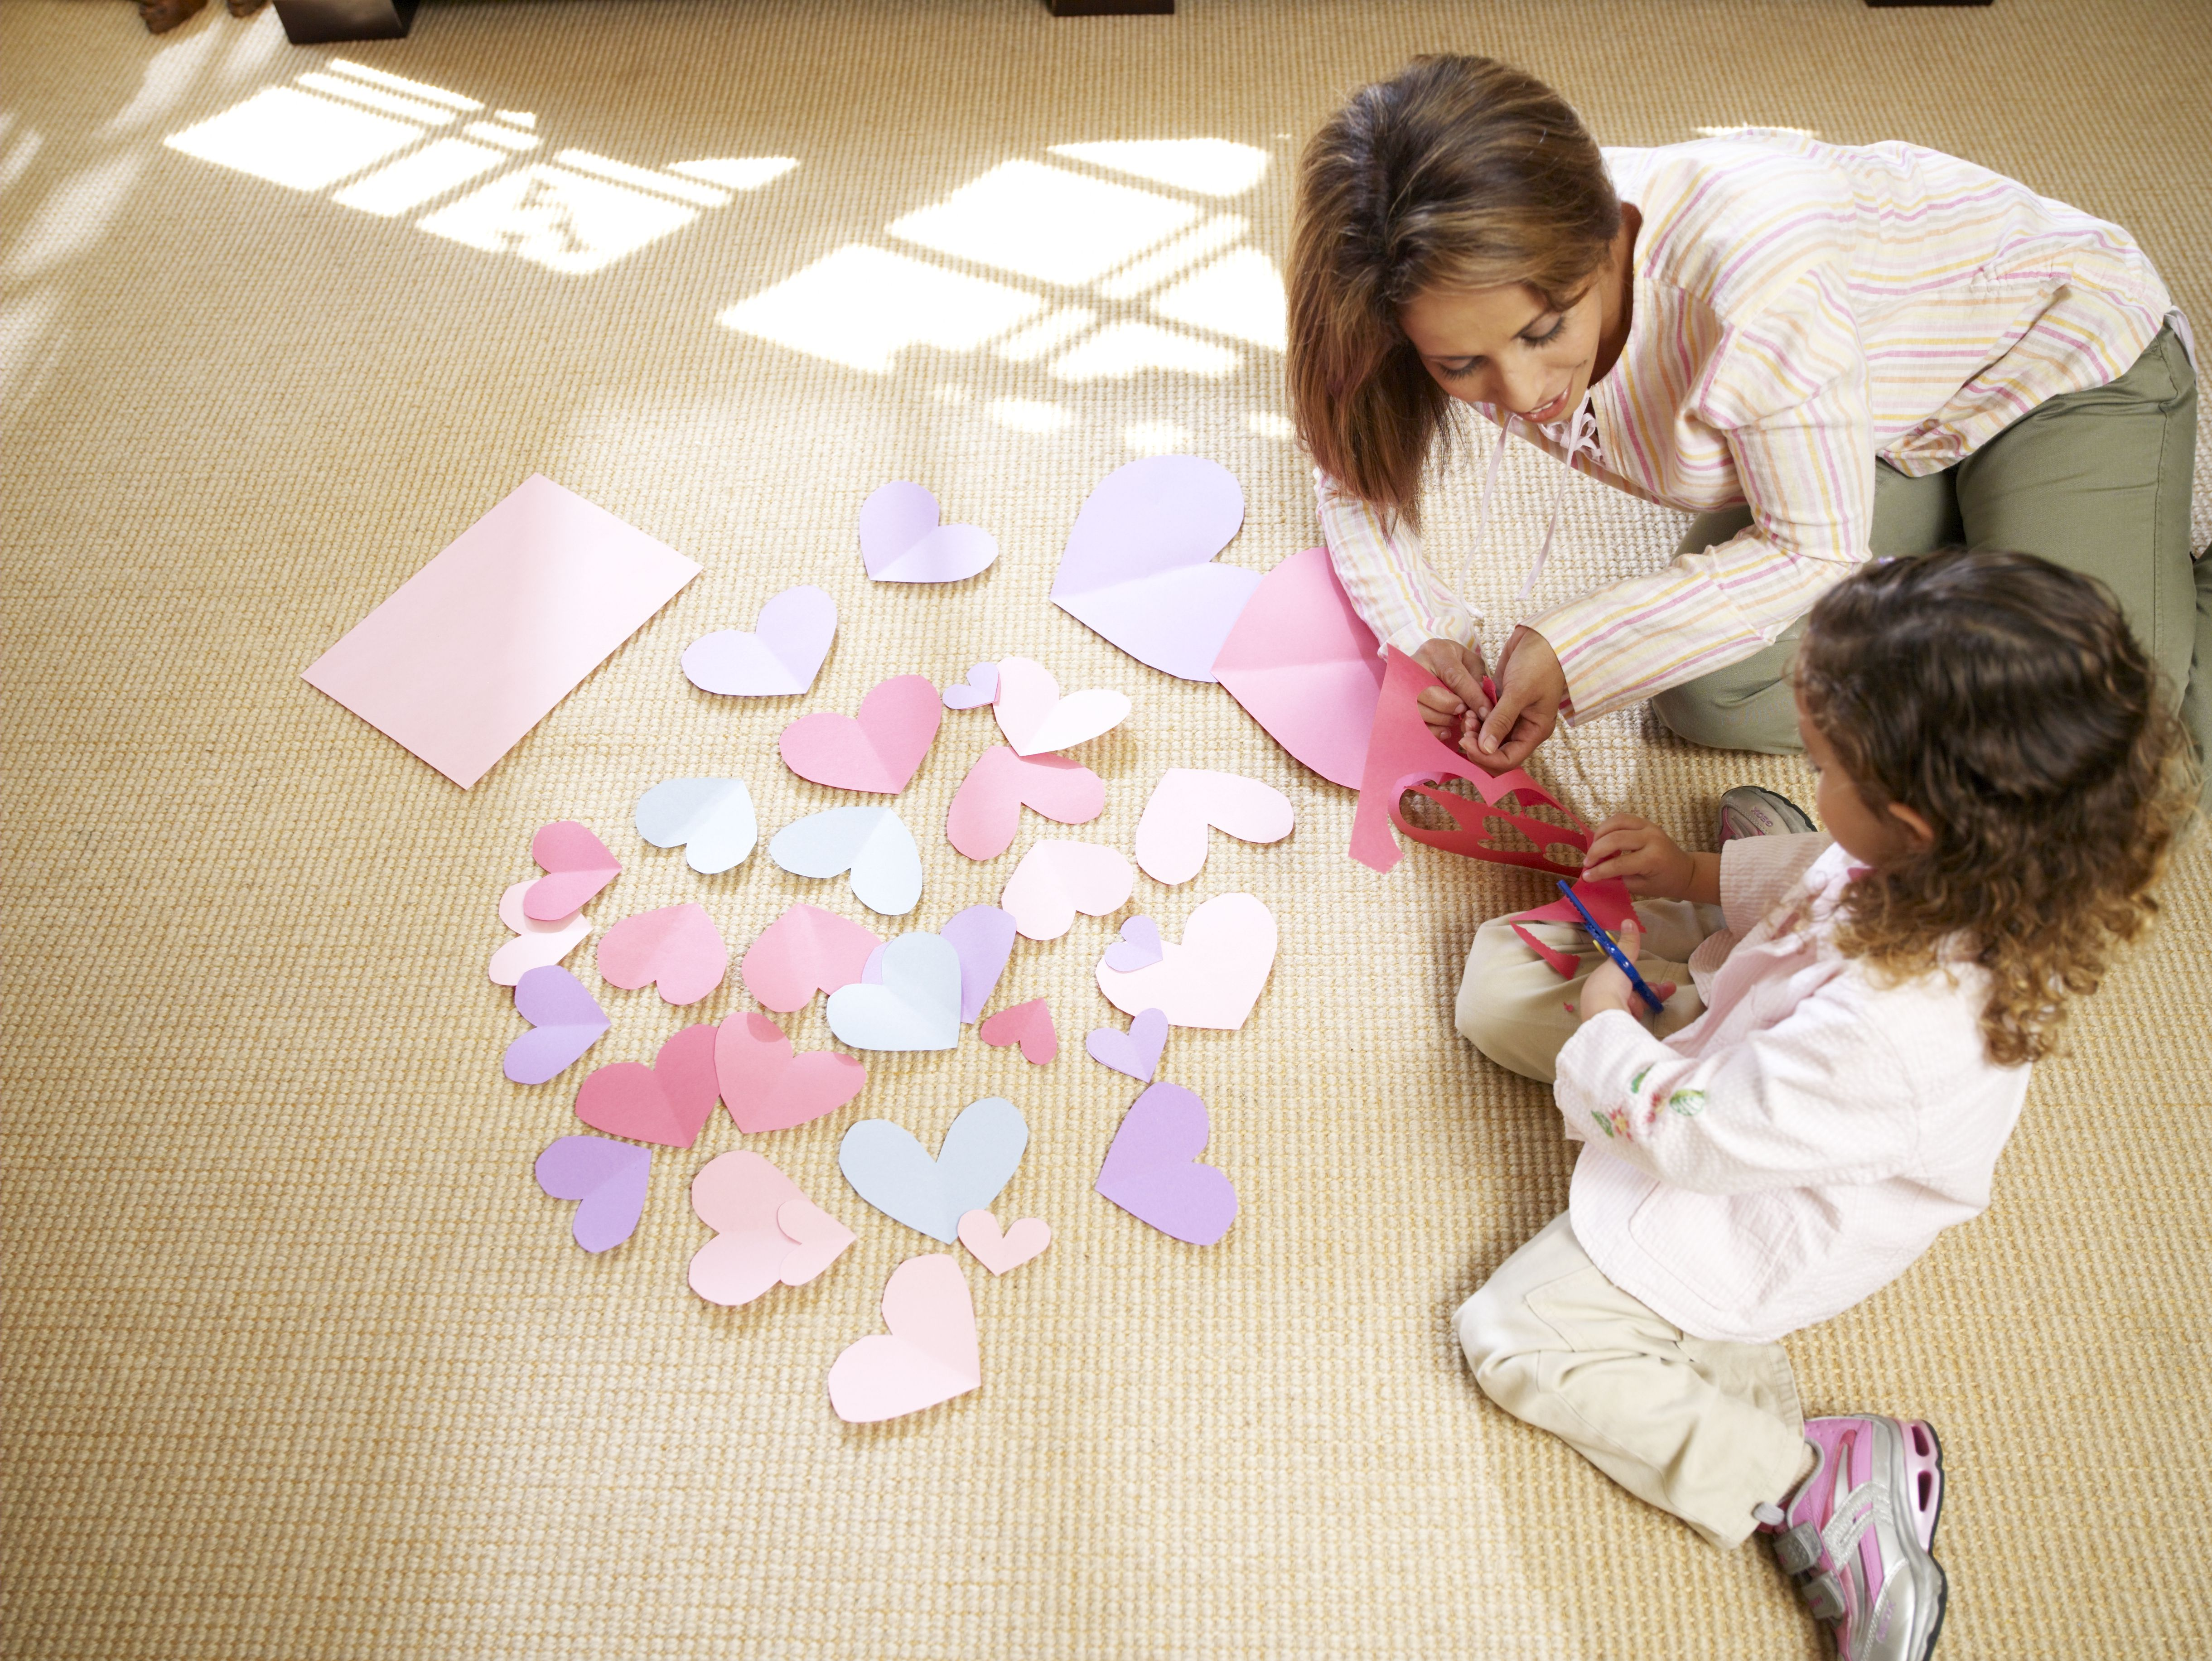 Mother assisting daughter (3-4) cutting off heart shape of paper